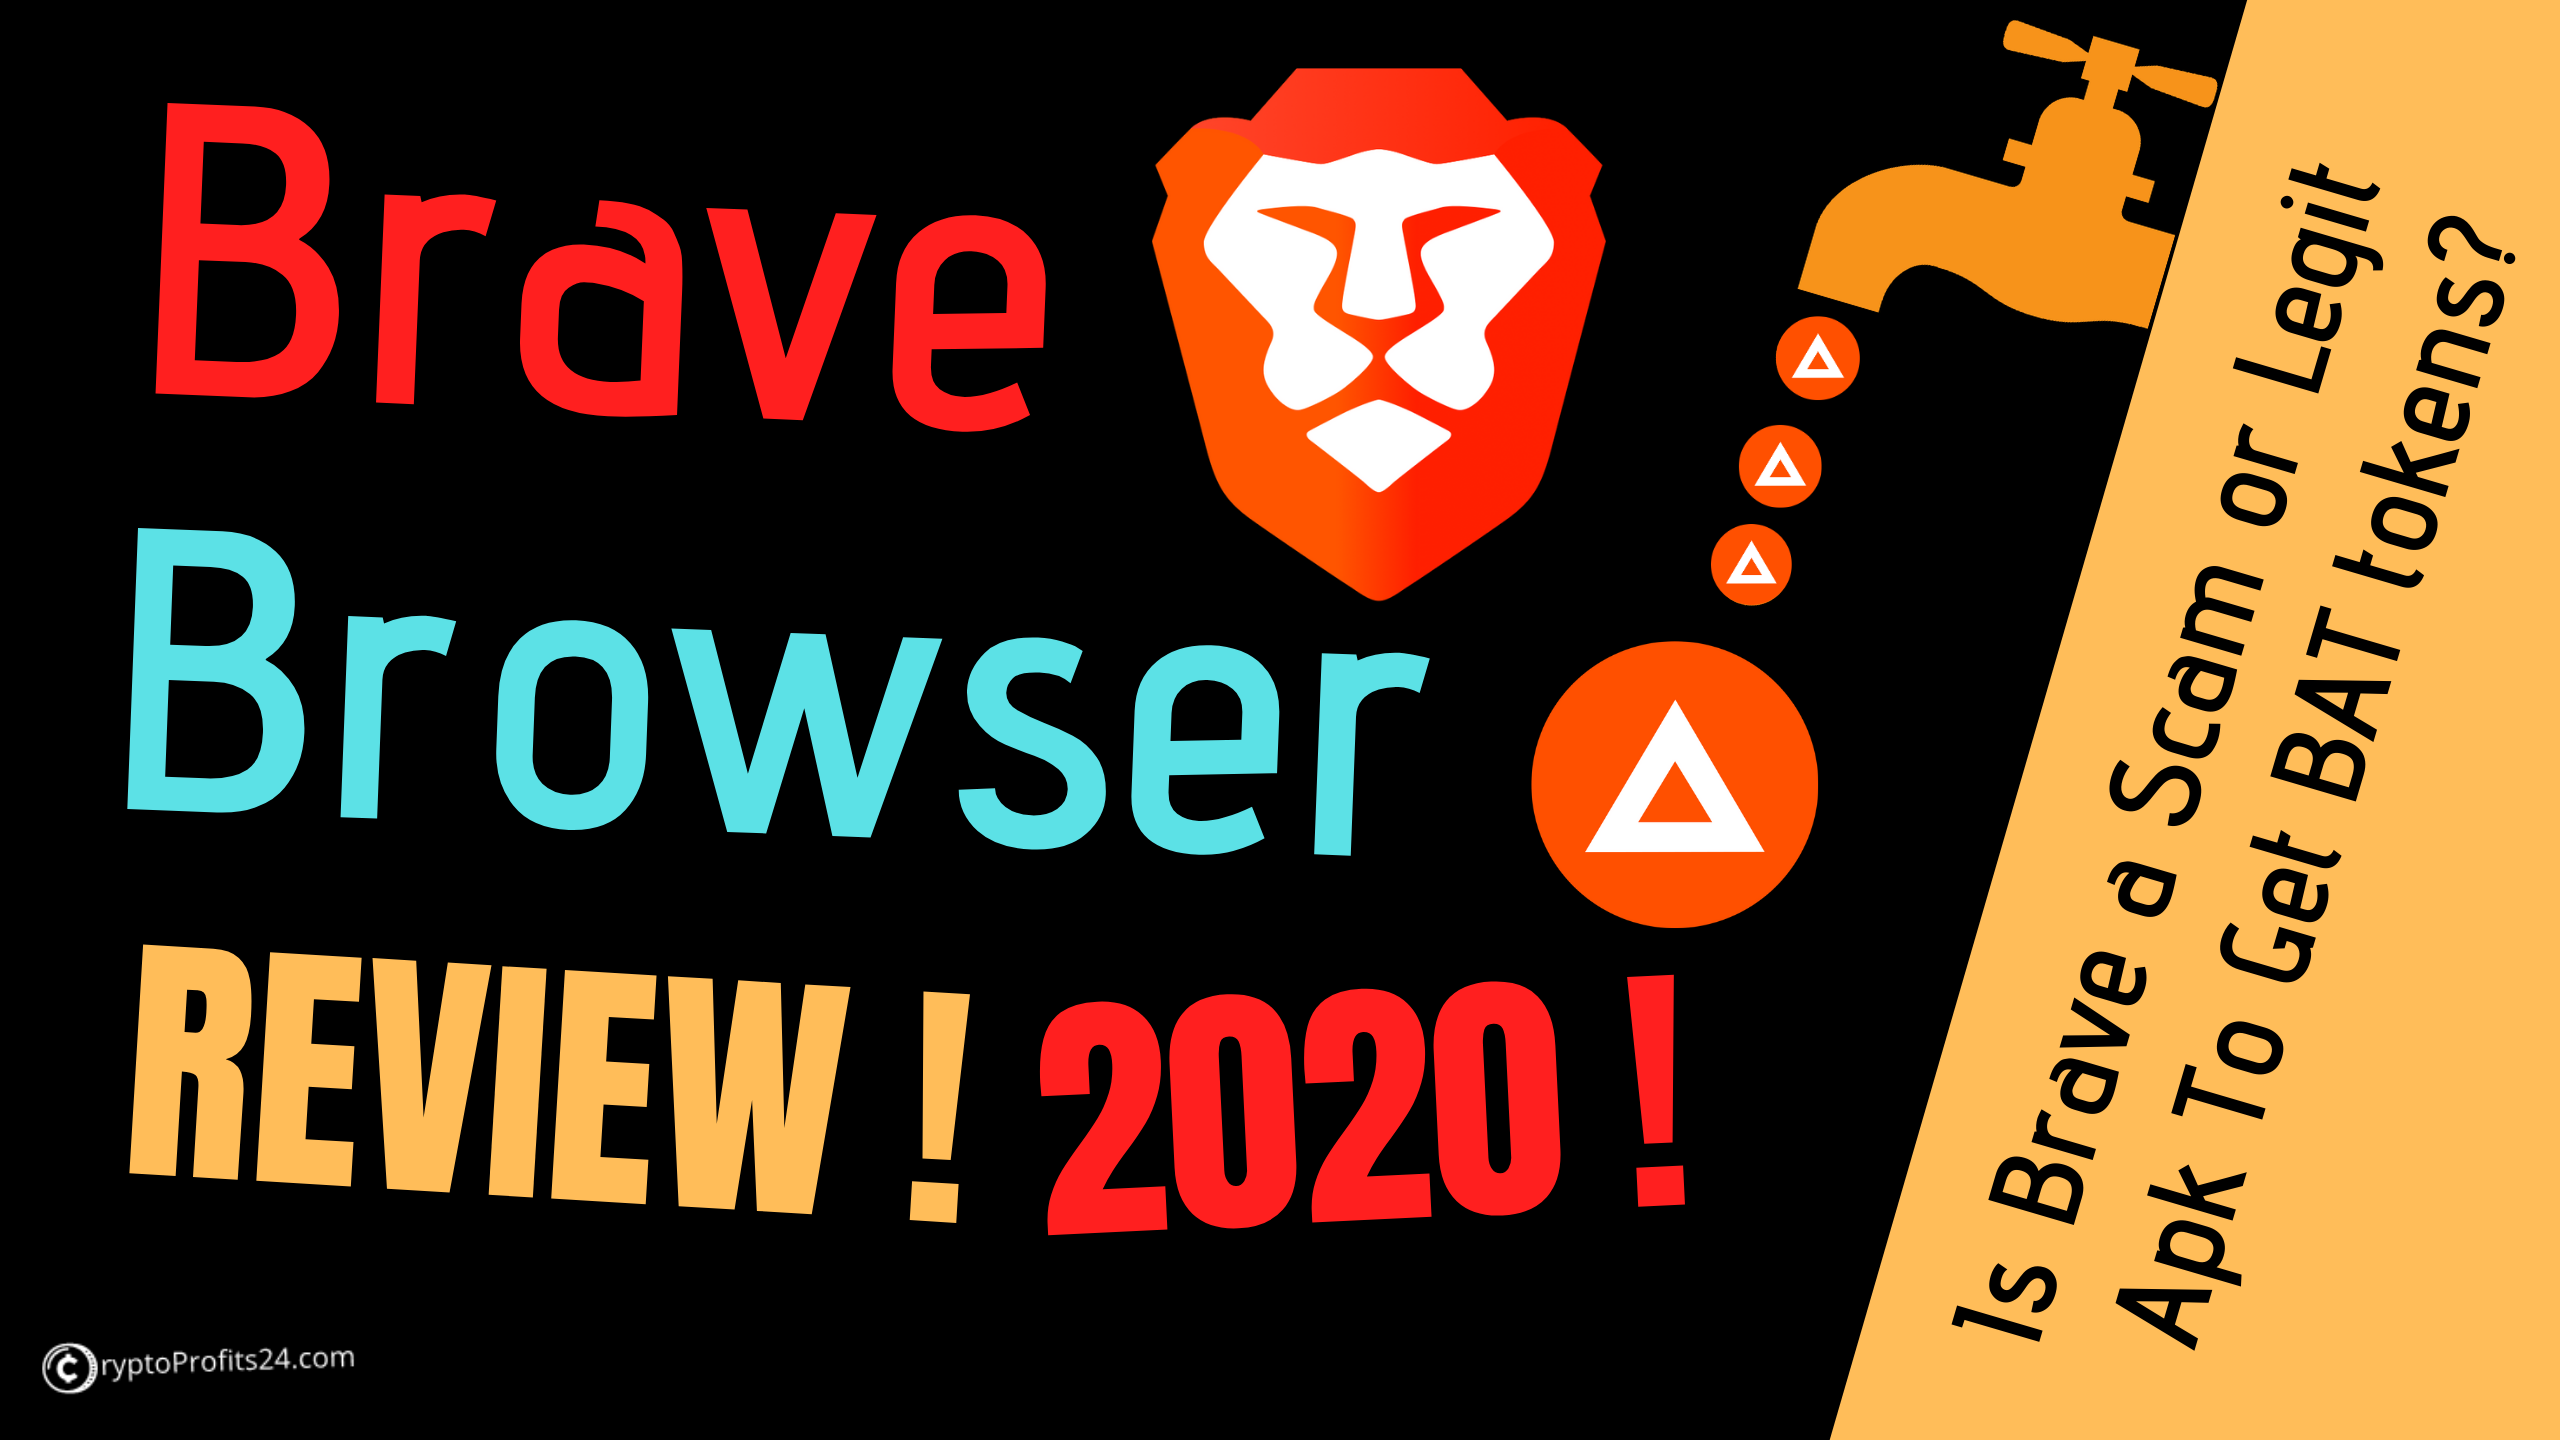 brave browser review 2020